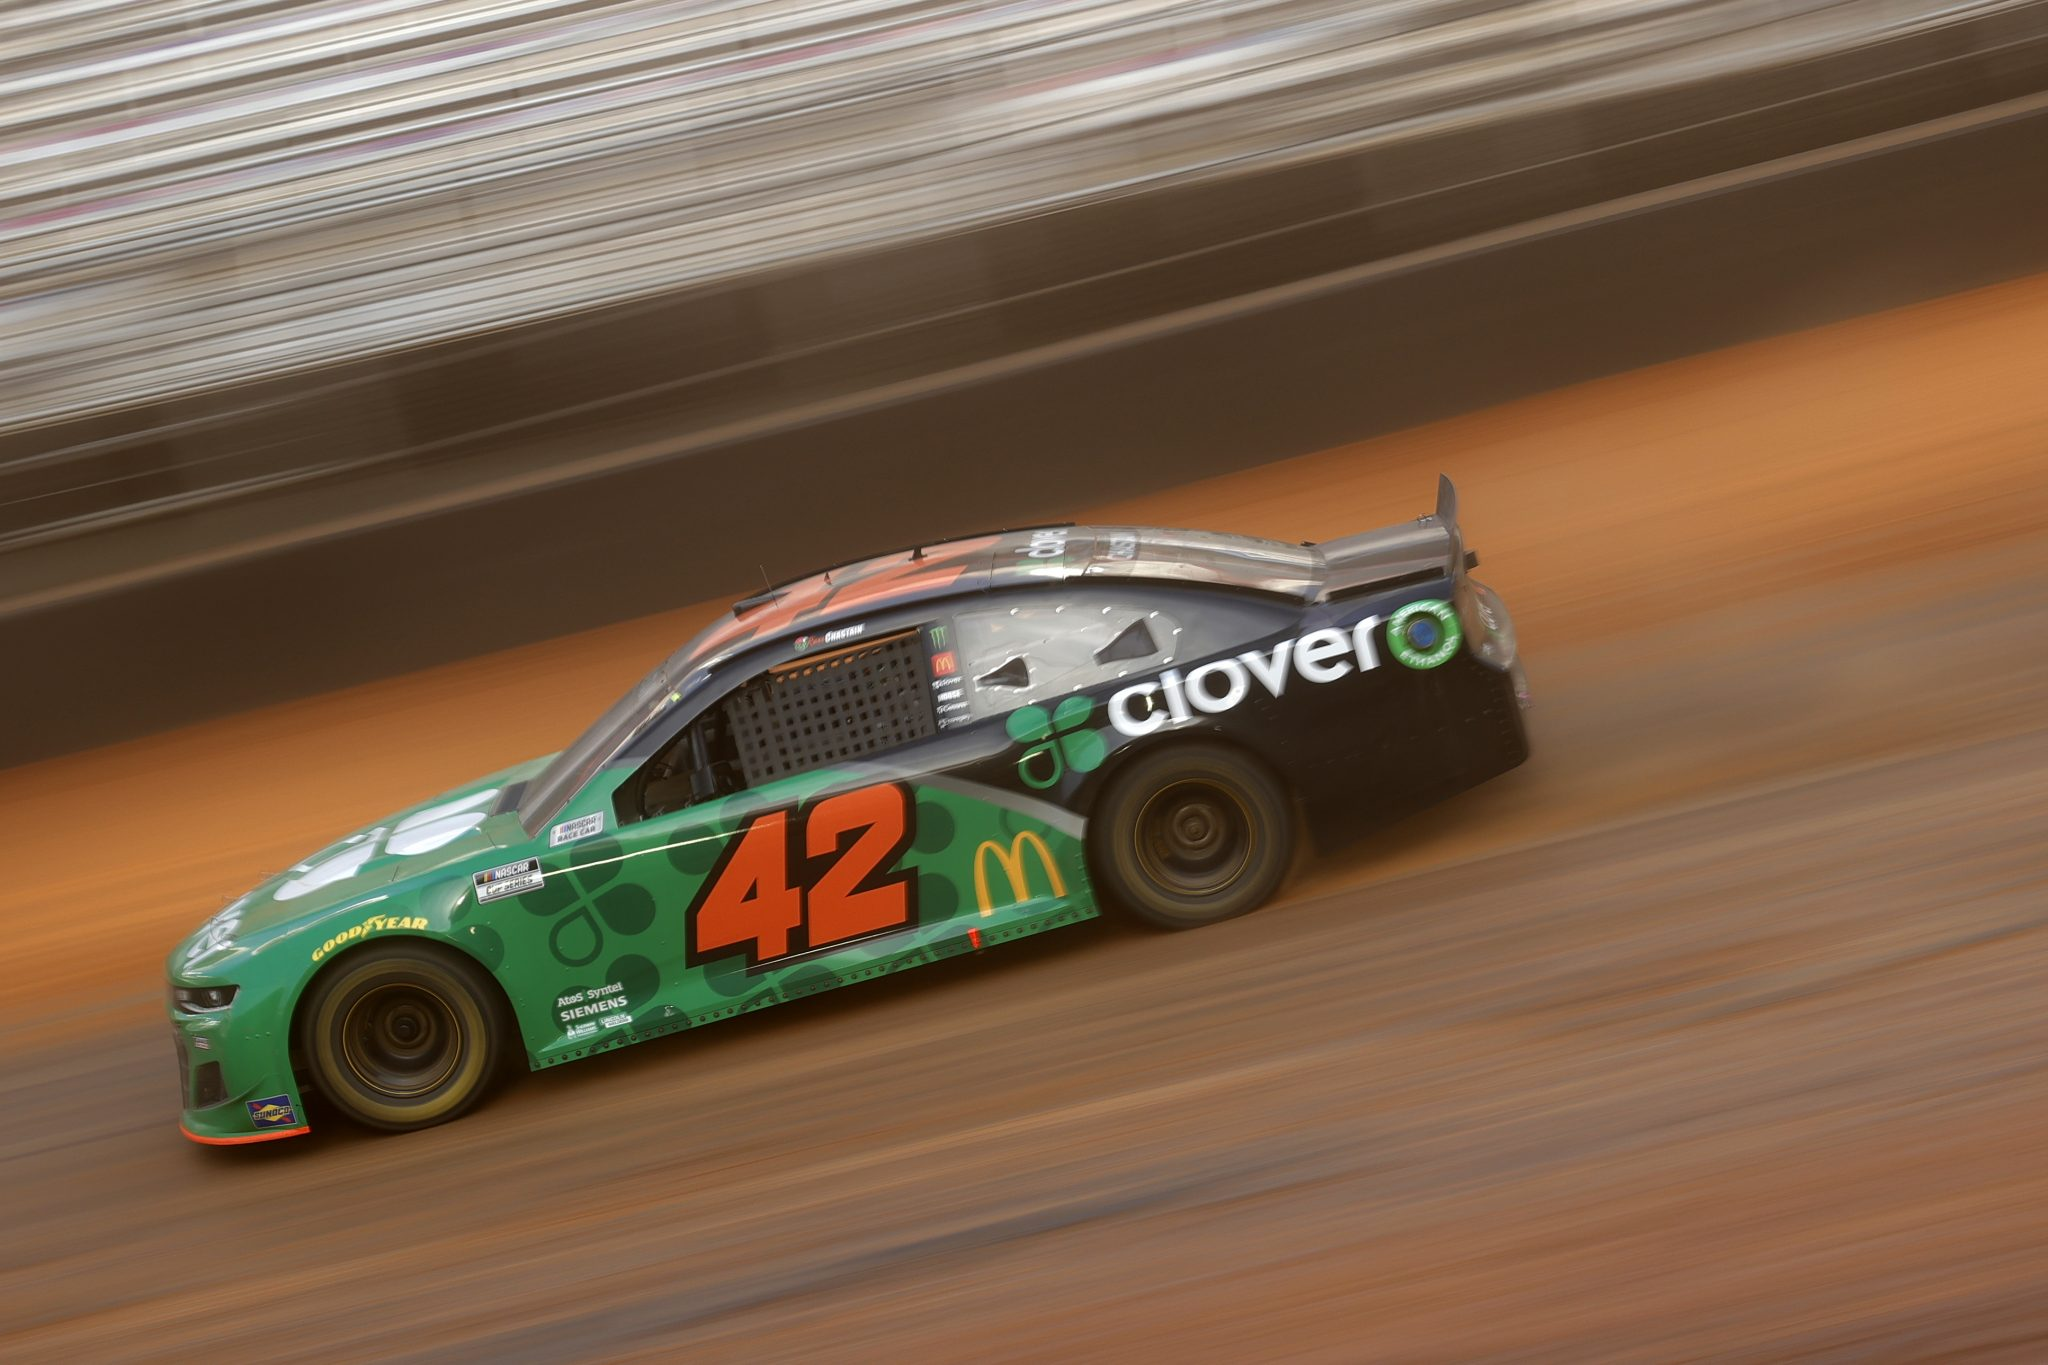 BRISTOL, TENNESSEE - MARCH 26: Ross Chastain, driver of the #42 Clover Chevrolet, drives during practice for the NASCAR Cup Series Food City Dirt Race at Bristol Motor Speedway on March 26, 2021 in Bristol, Tennessee. (Photo by Chris Graythen/Getty Images) | Getty Images